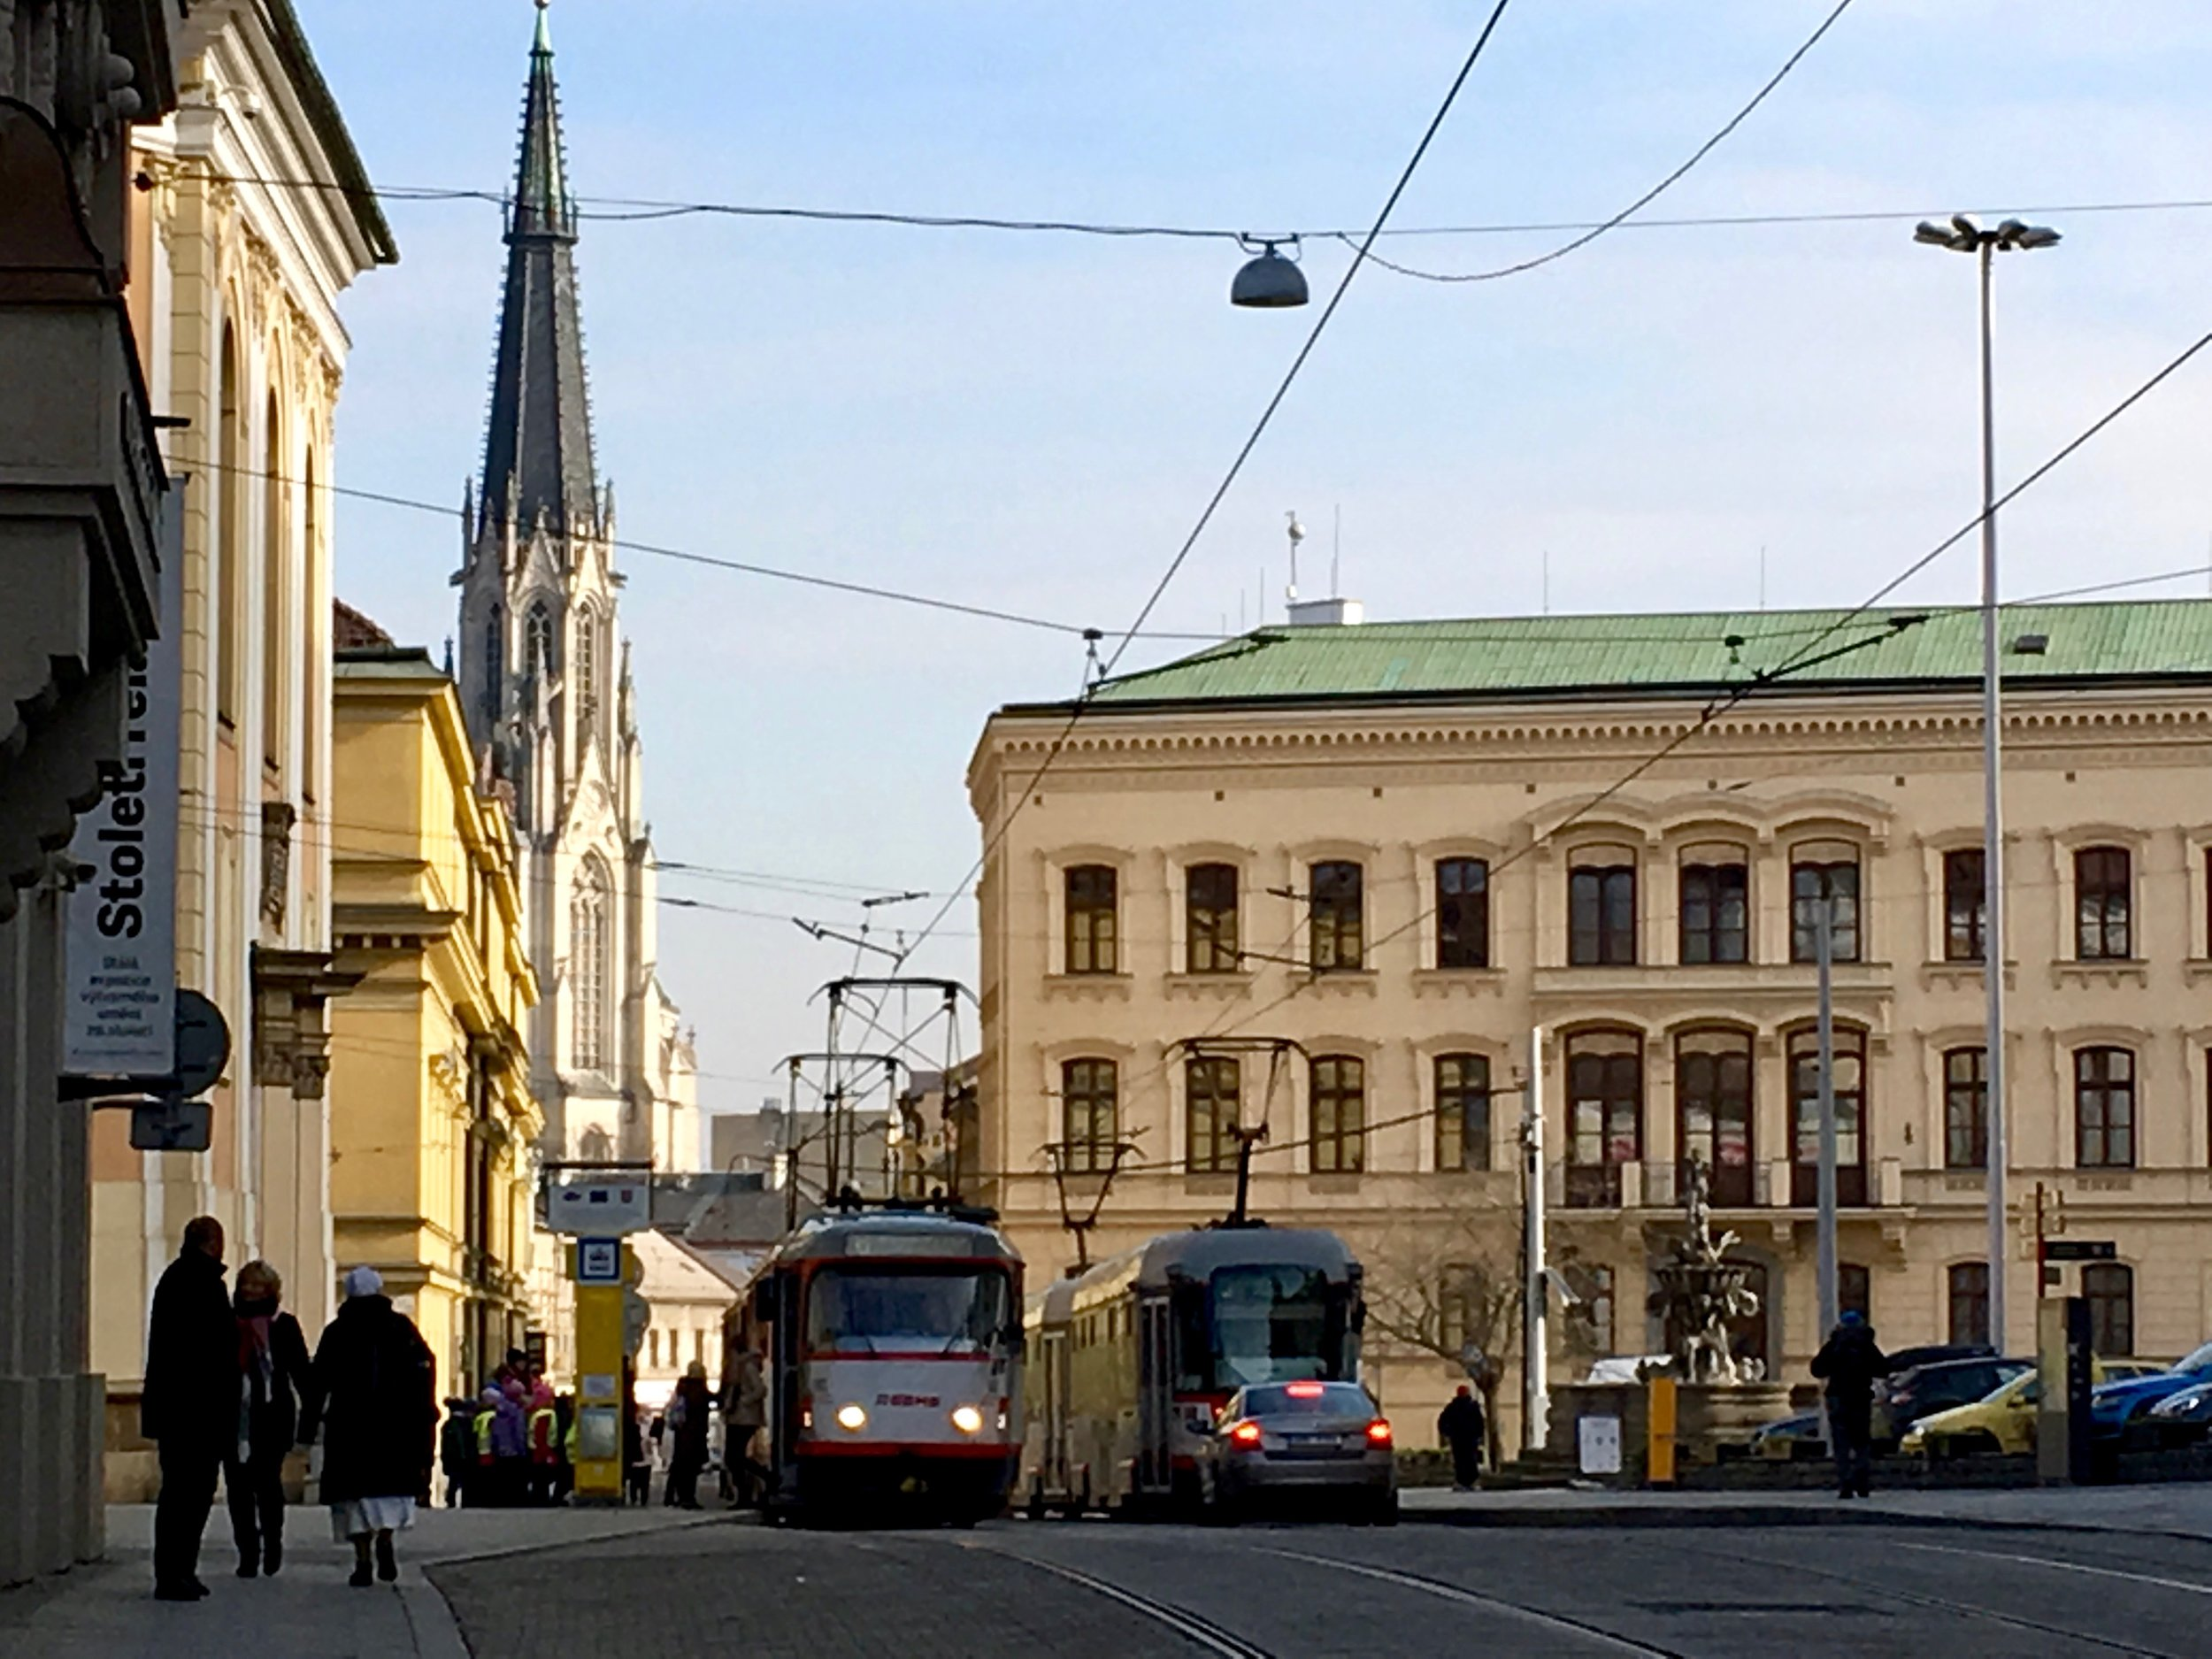 Our city Olomouc is like a living organism. It changes with the seasons and even the demeanor of the people is visibly different based on the time of the year.